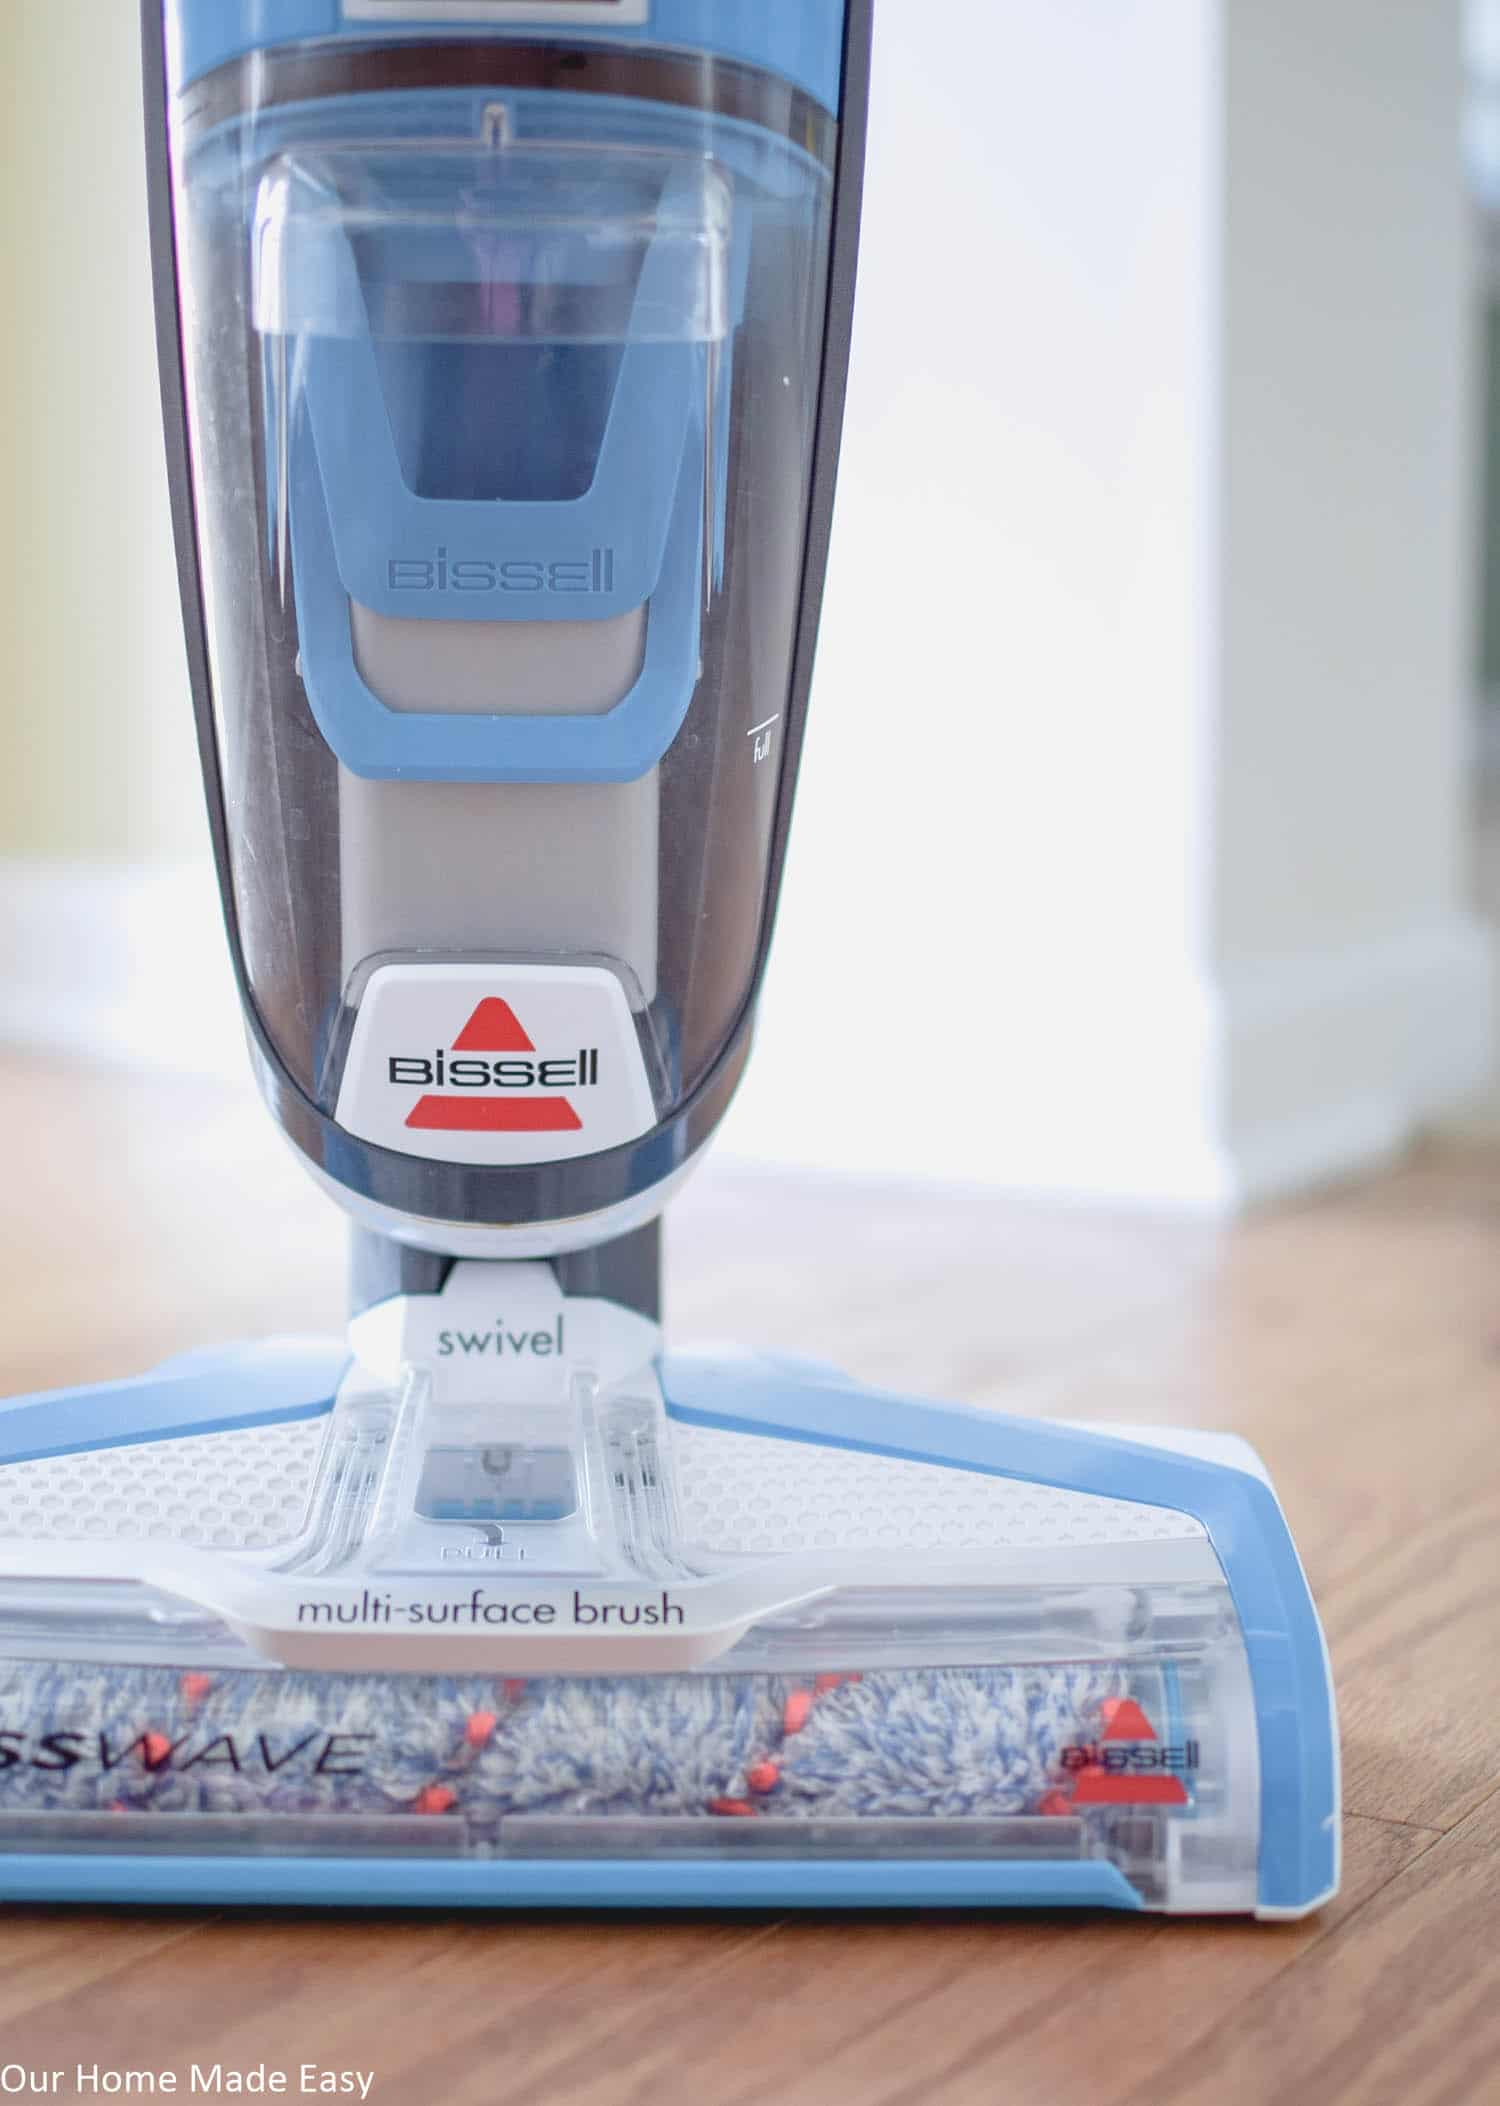 The Bissell CrossWave has a multi-surface brush that makes cleaning your floors really easy! It works on hardwood, tile, and carpet